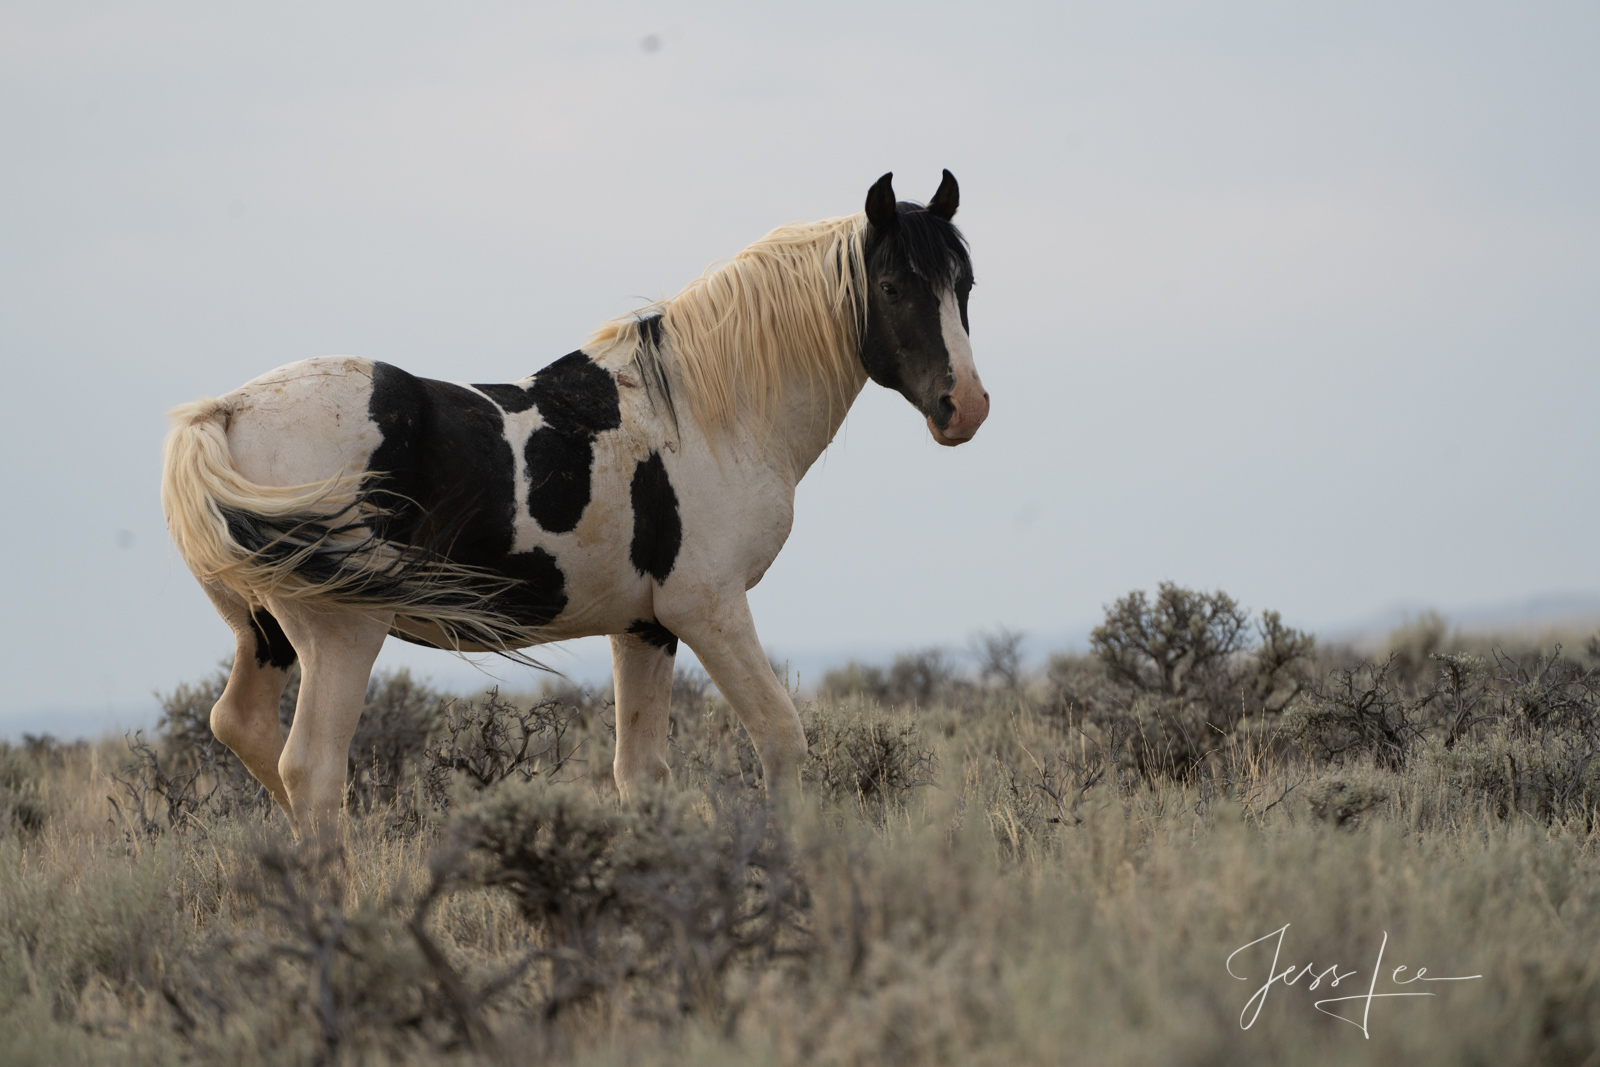 Fine Art Black and White Print of Wyoming Wild Horses. Limited Edition of 250 Luxurious Prints.  Choose the style, size, and...